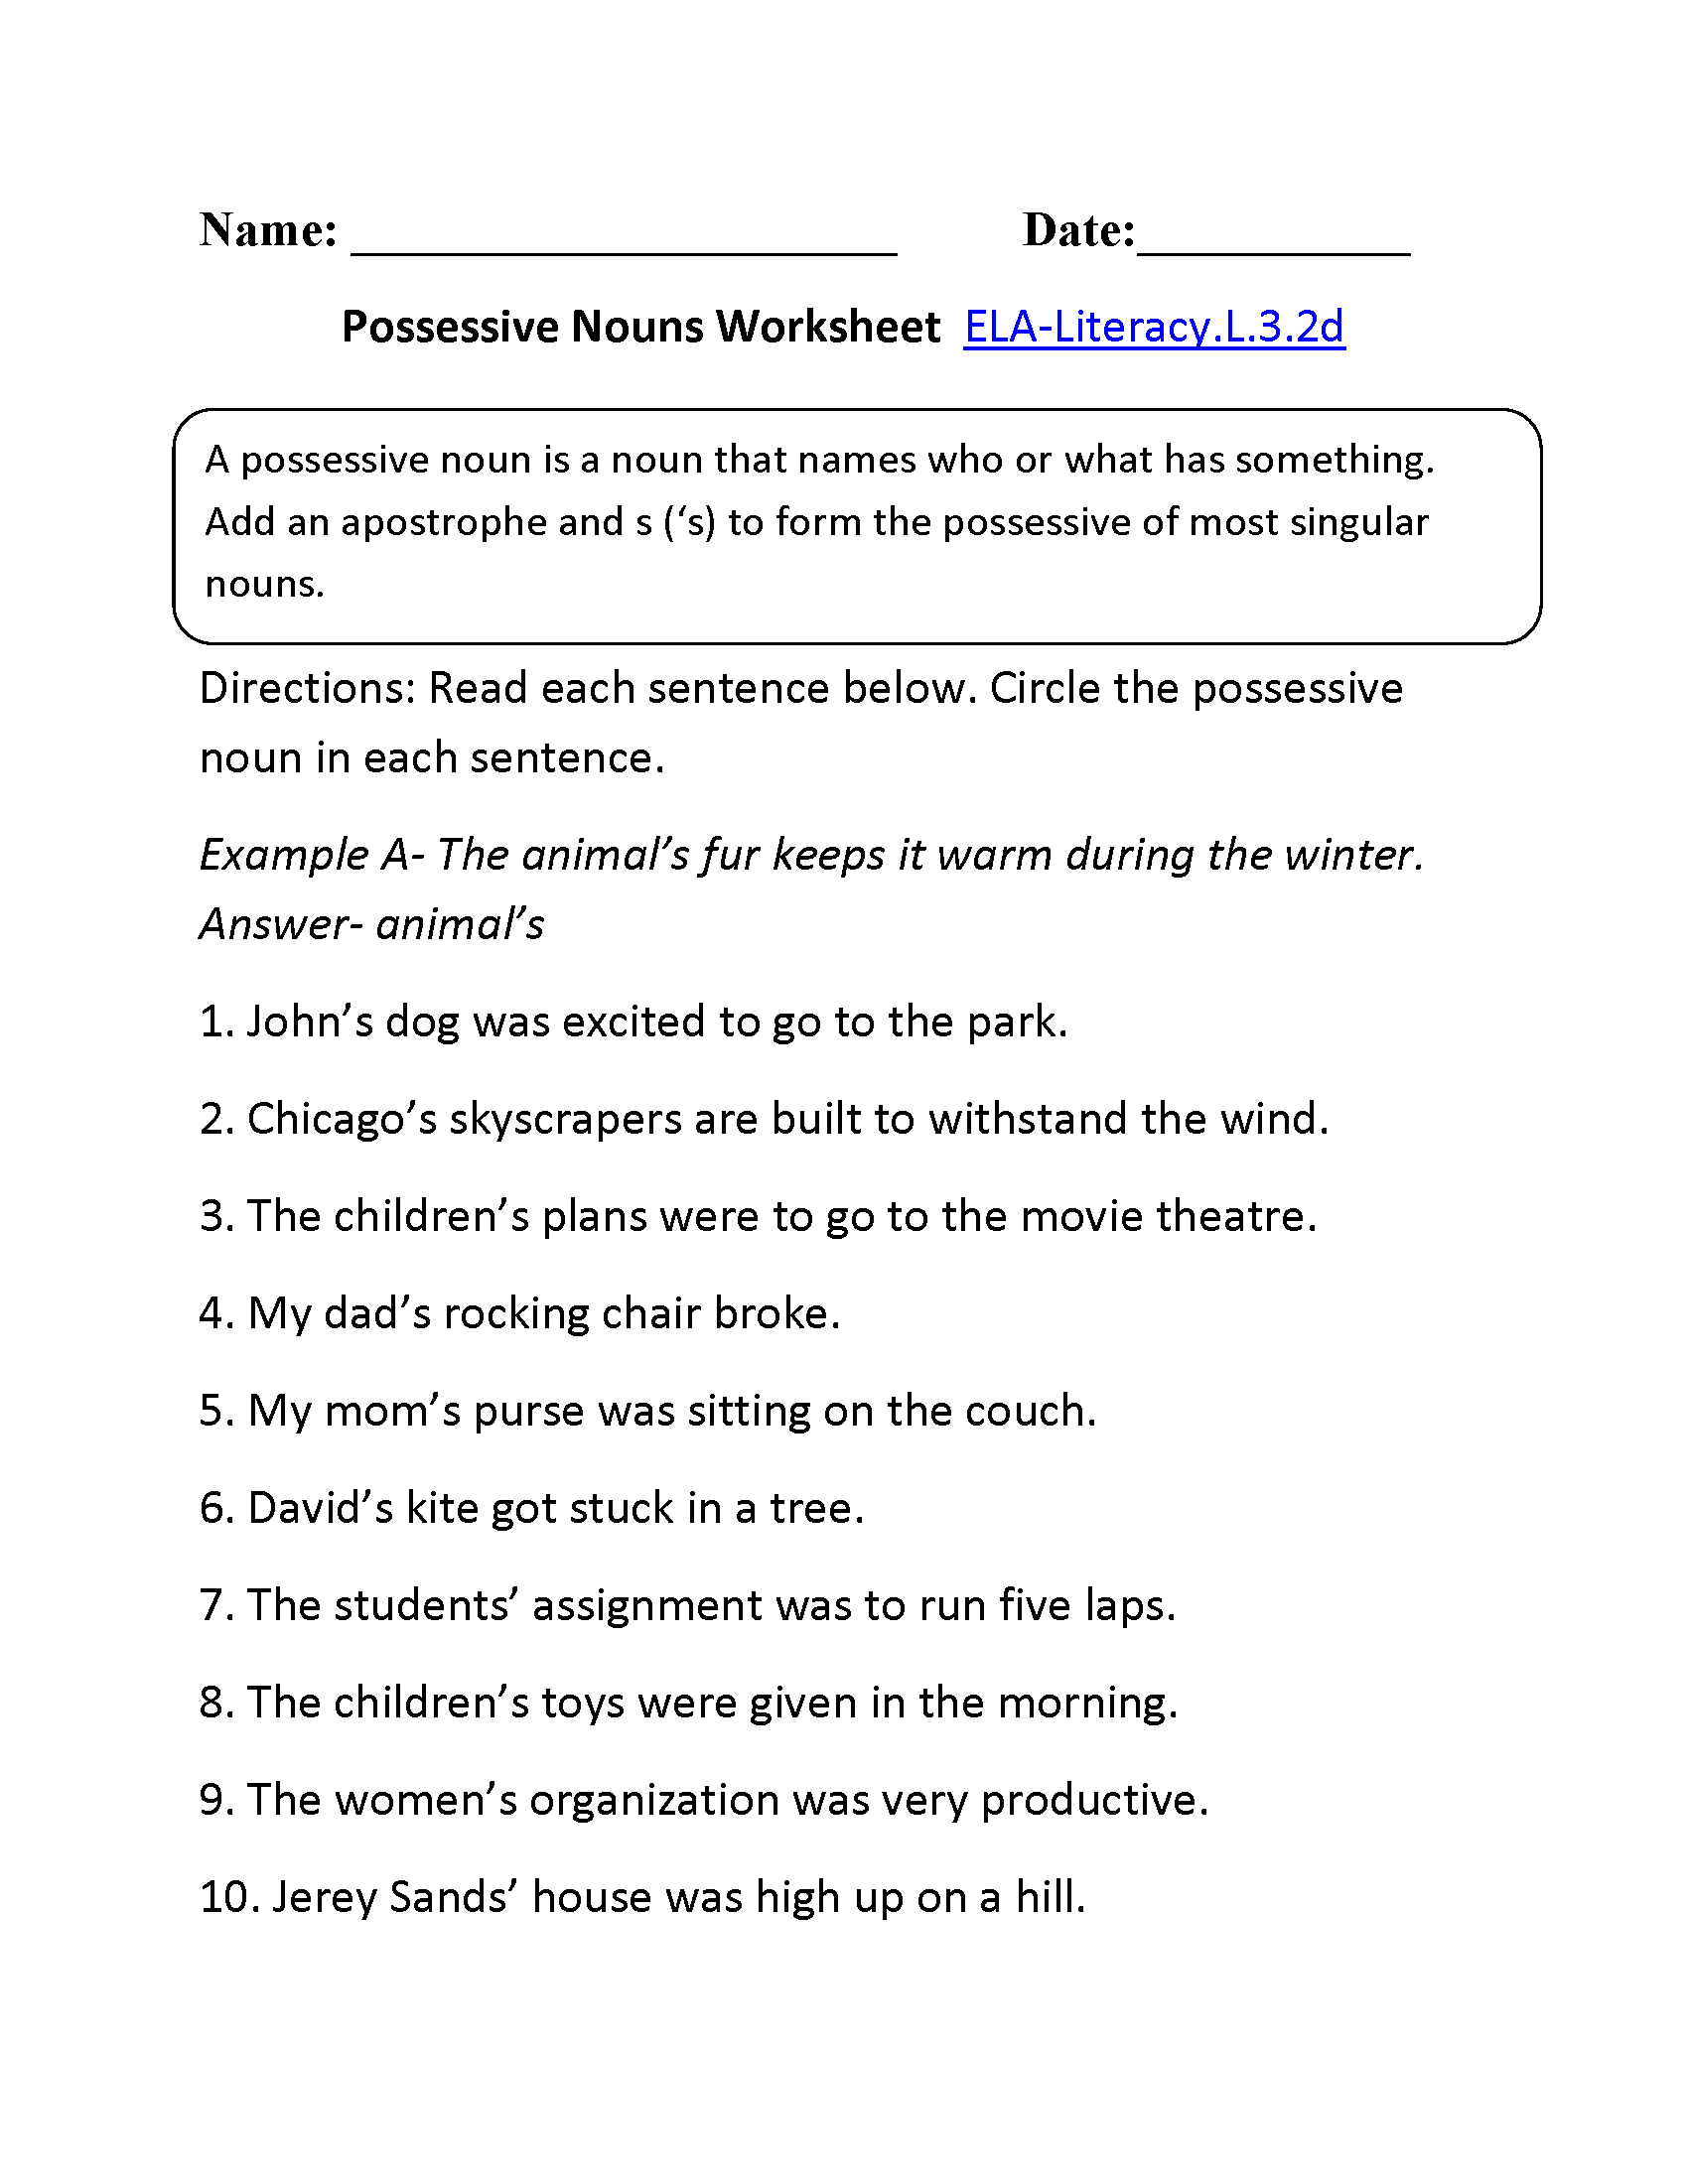 Possessive Nouns Worksheet 1 ELA-Literacy.L.3.2d Language Worksheet   Nouns  worksheet [ 2200 x 1700 Pixel ]